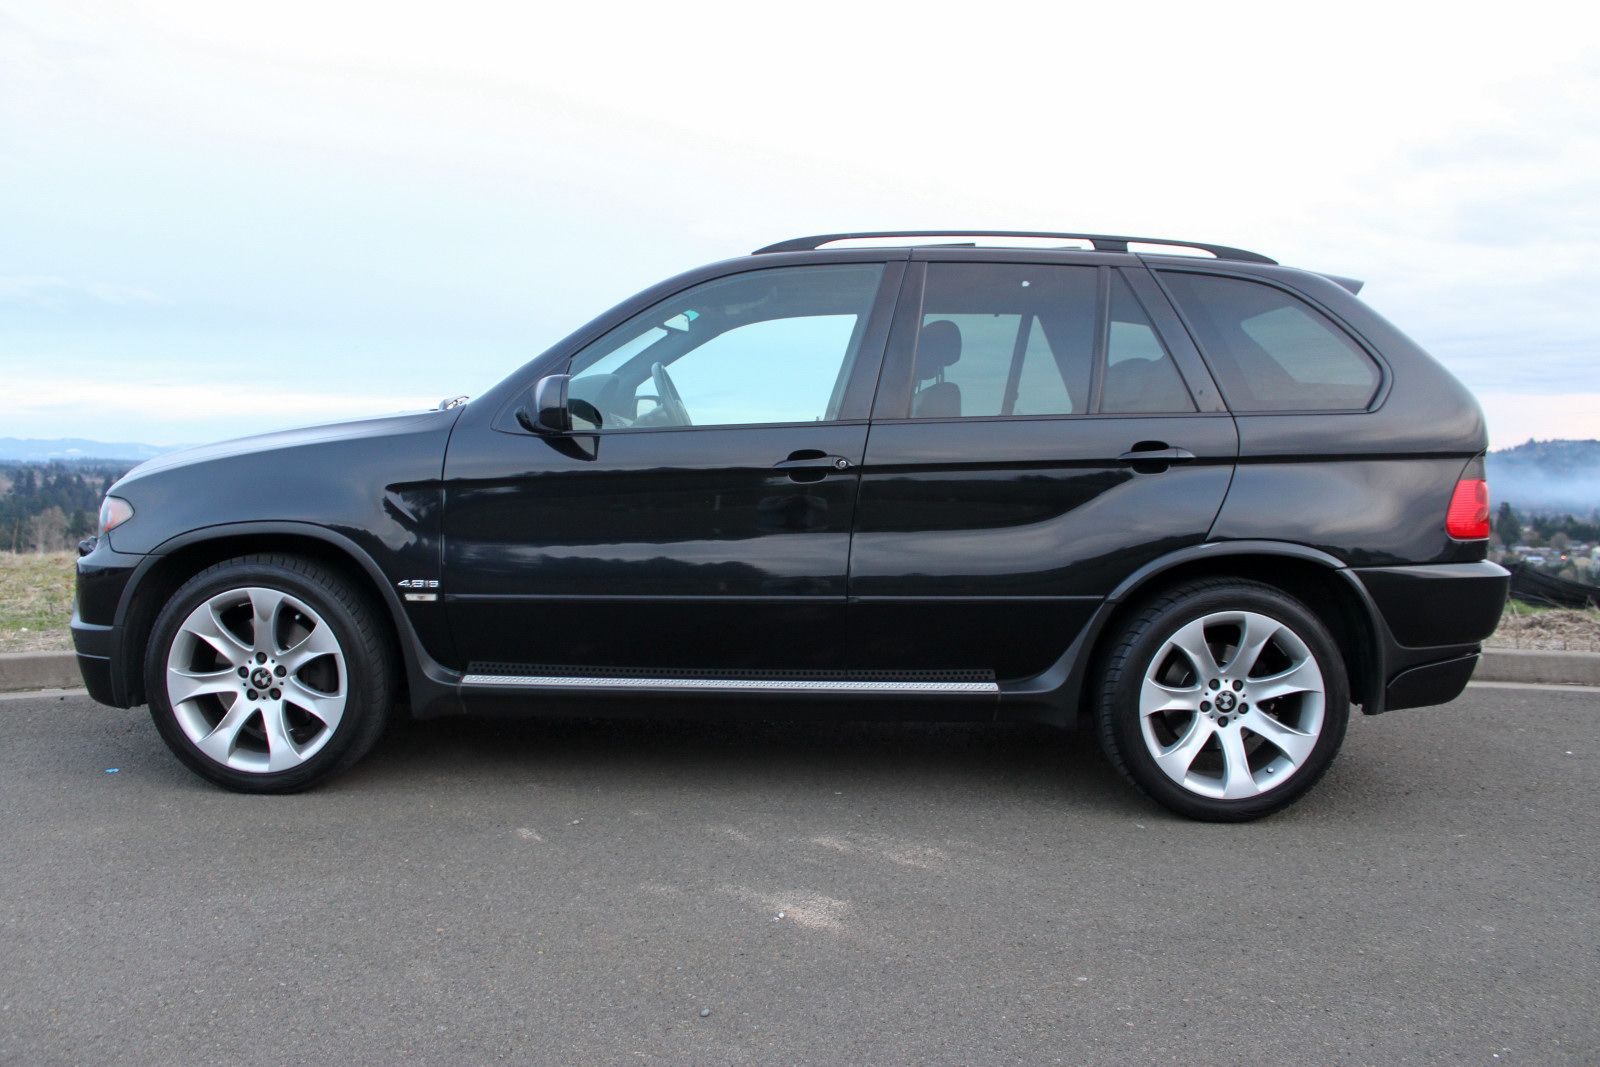 2005 Bmw X5 With Images Bmw X5 Bmw X5 E53 Bmw